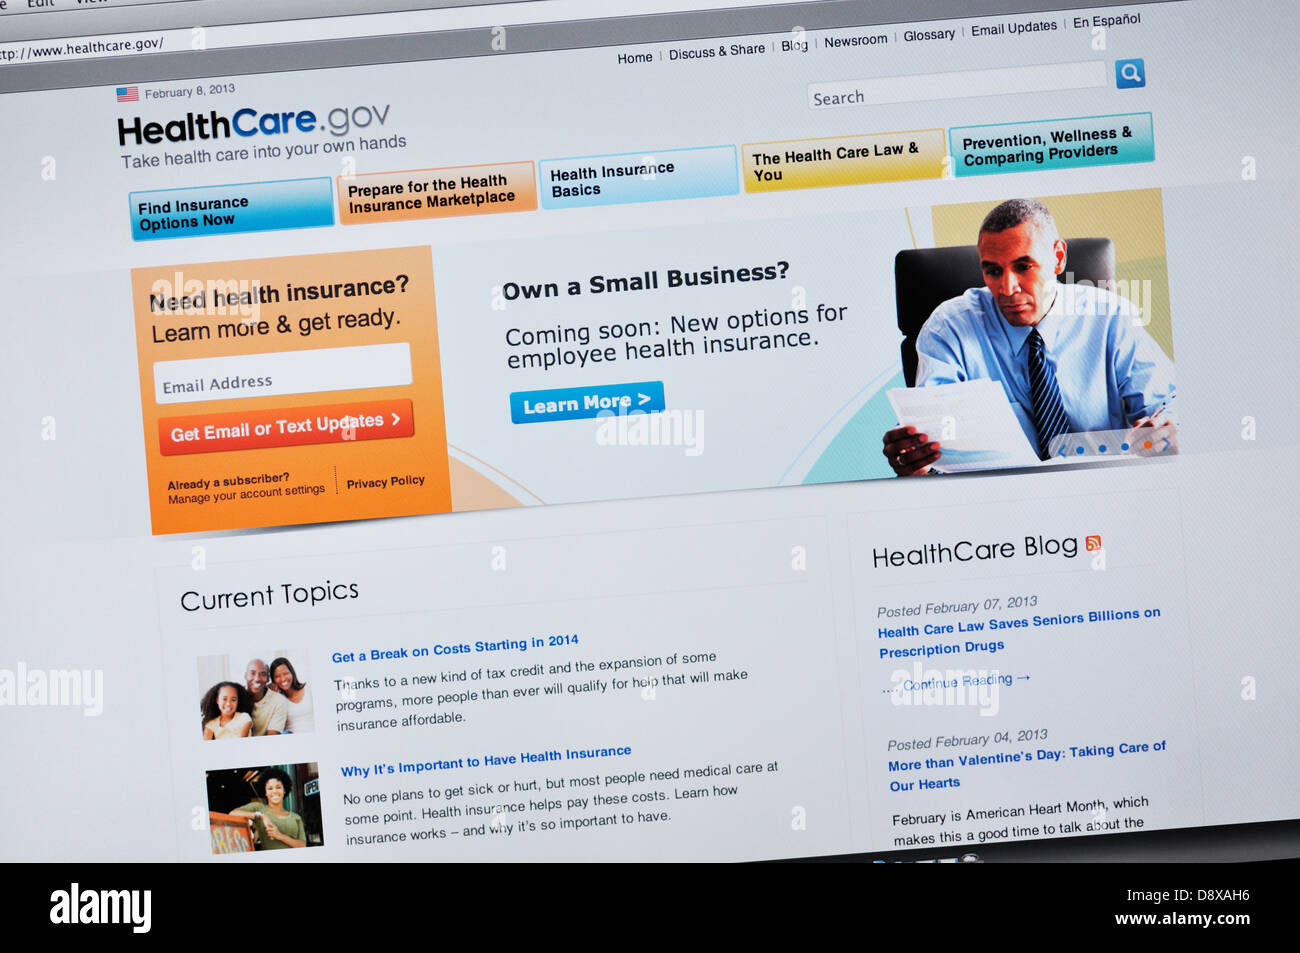 Healthcare Gov Quotes Healthcare.gov Website  Online Health Insurance Quotes Stock